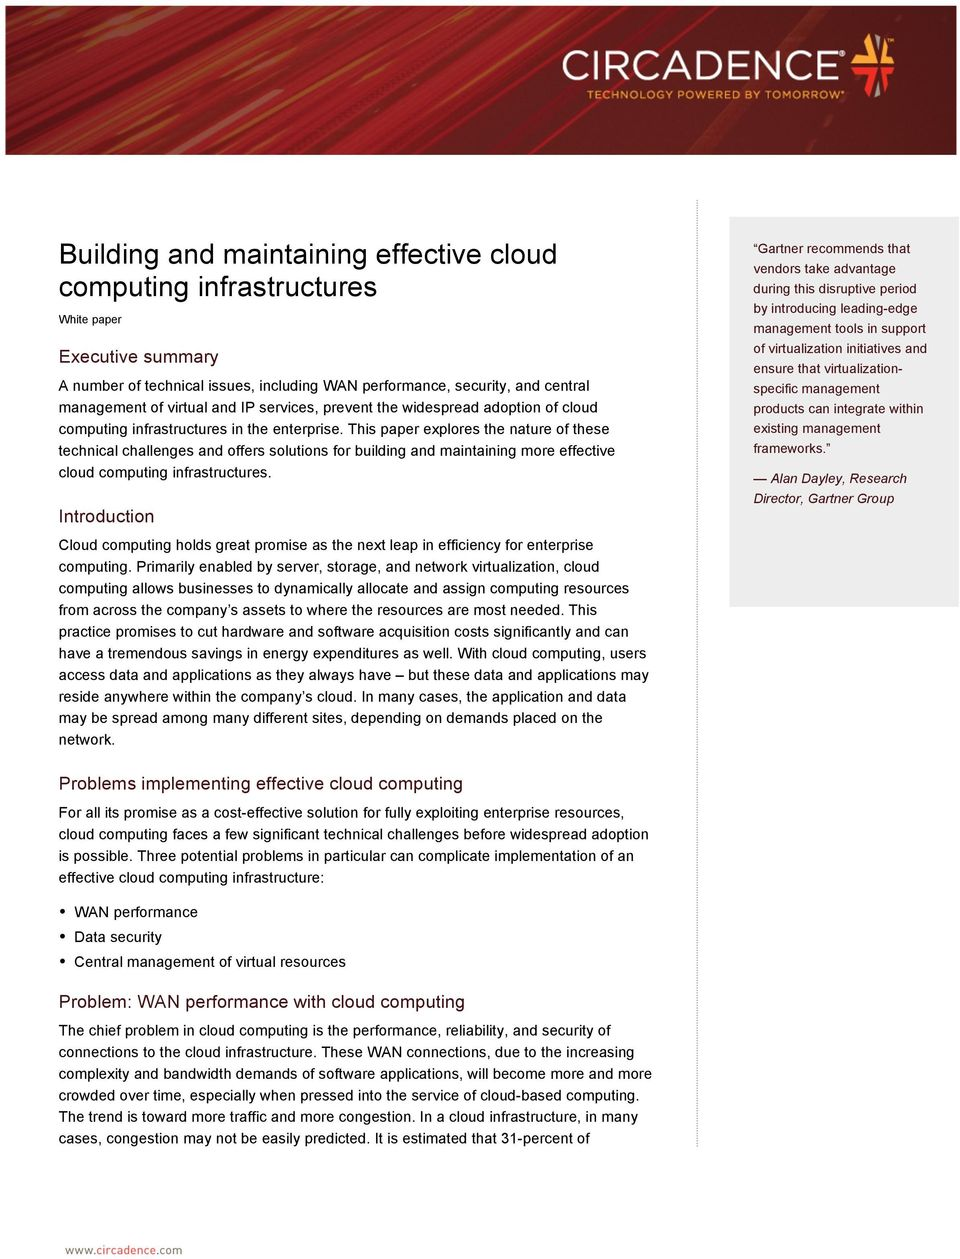 This paper explores the nature of these technical challenges and offers solutions for building and maintaining more effective cloud computing infrastructures.